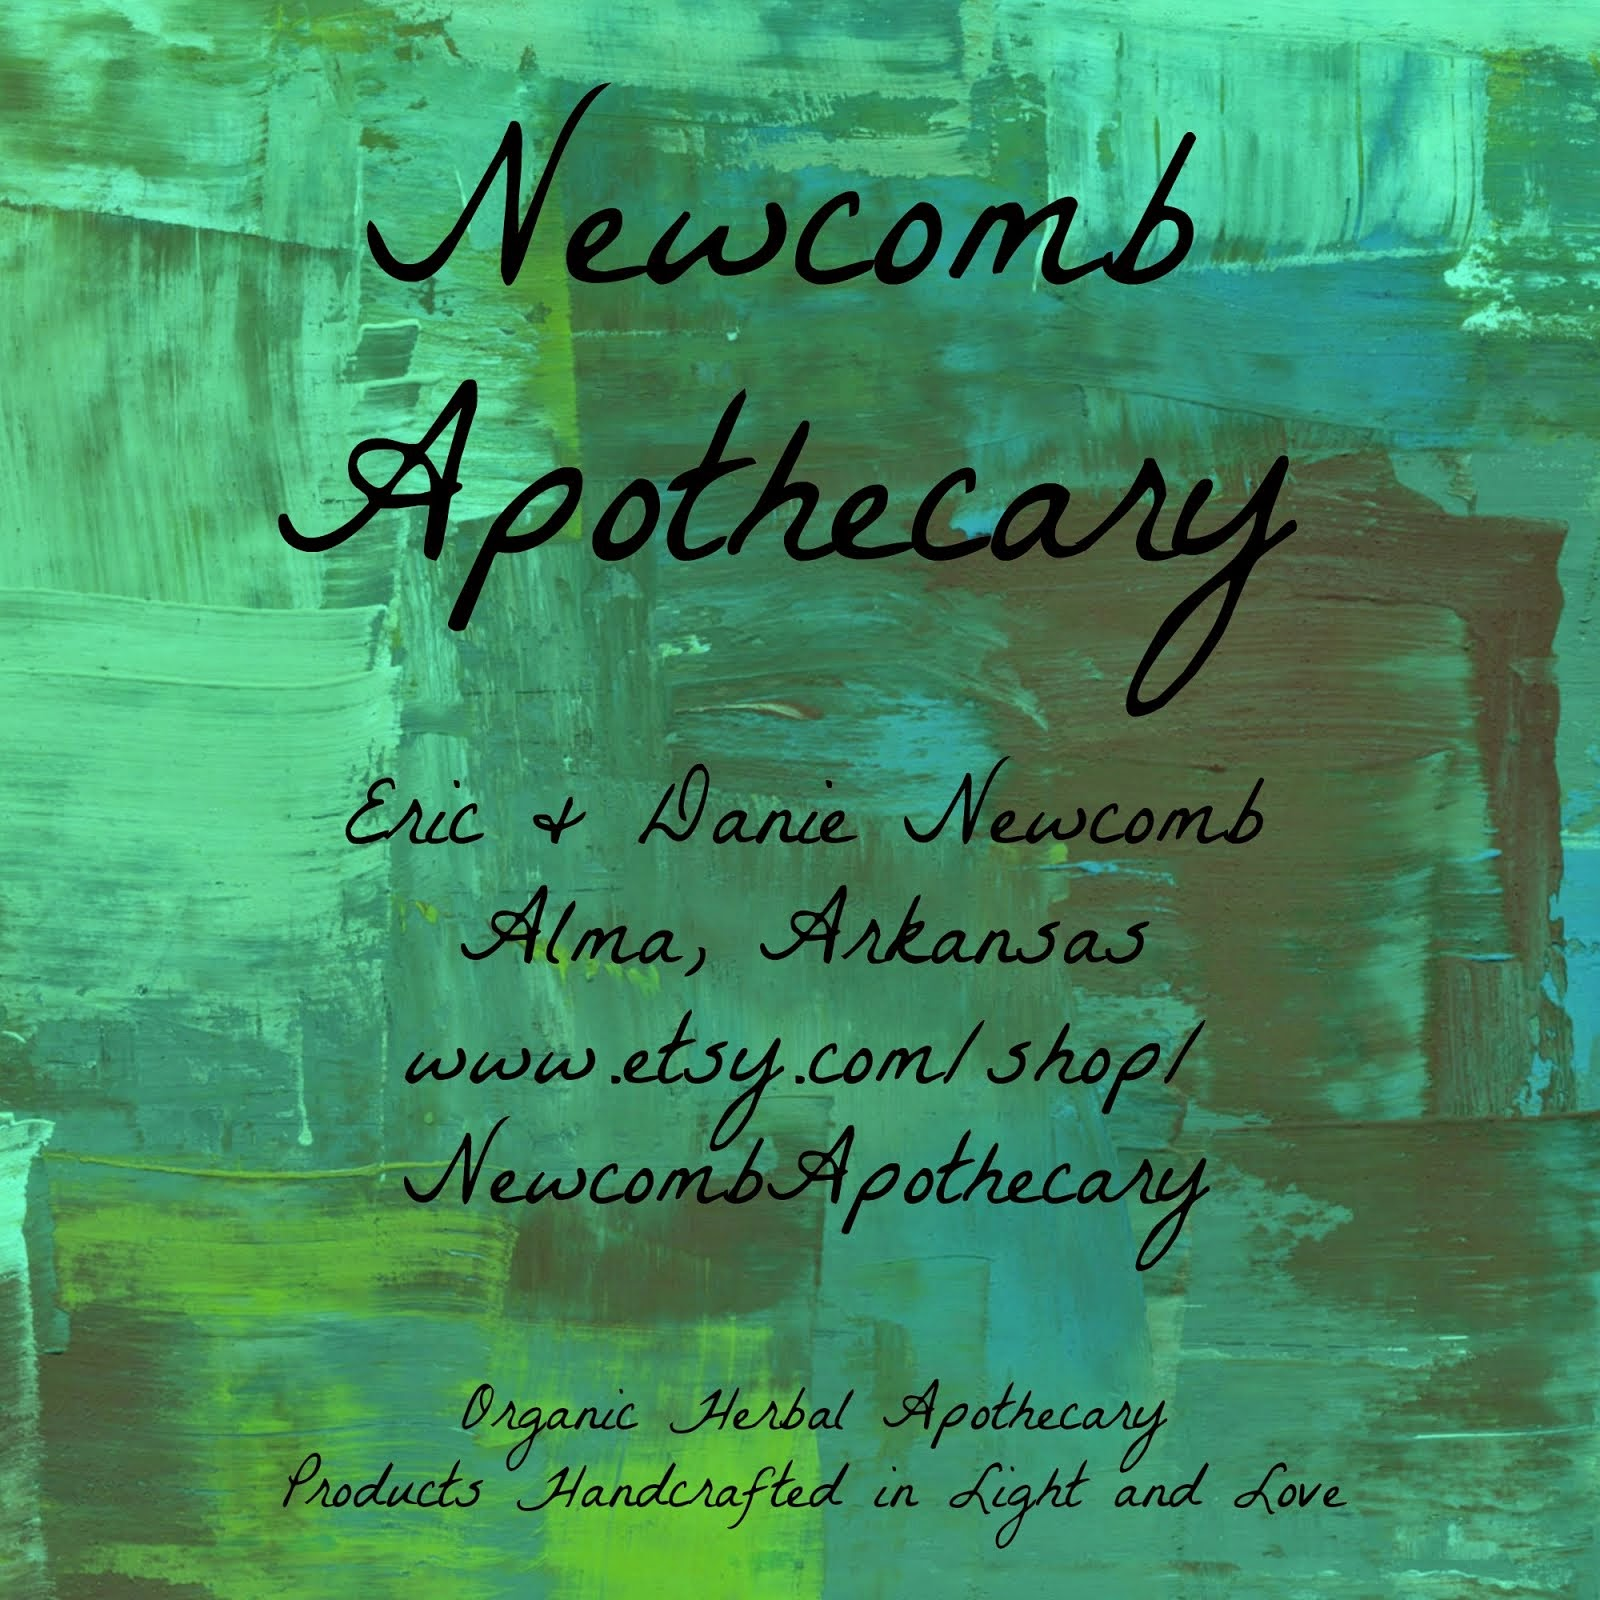 Newcomb Apothecary